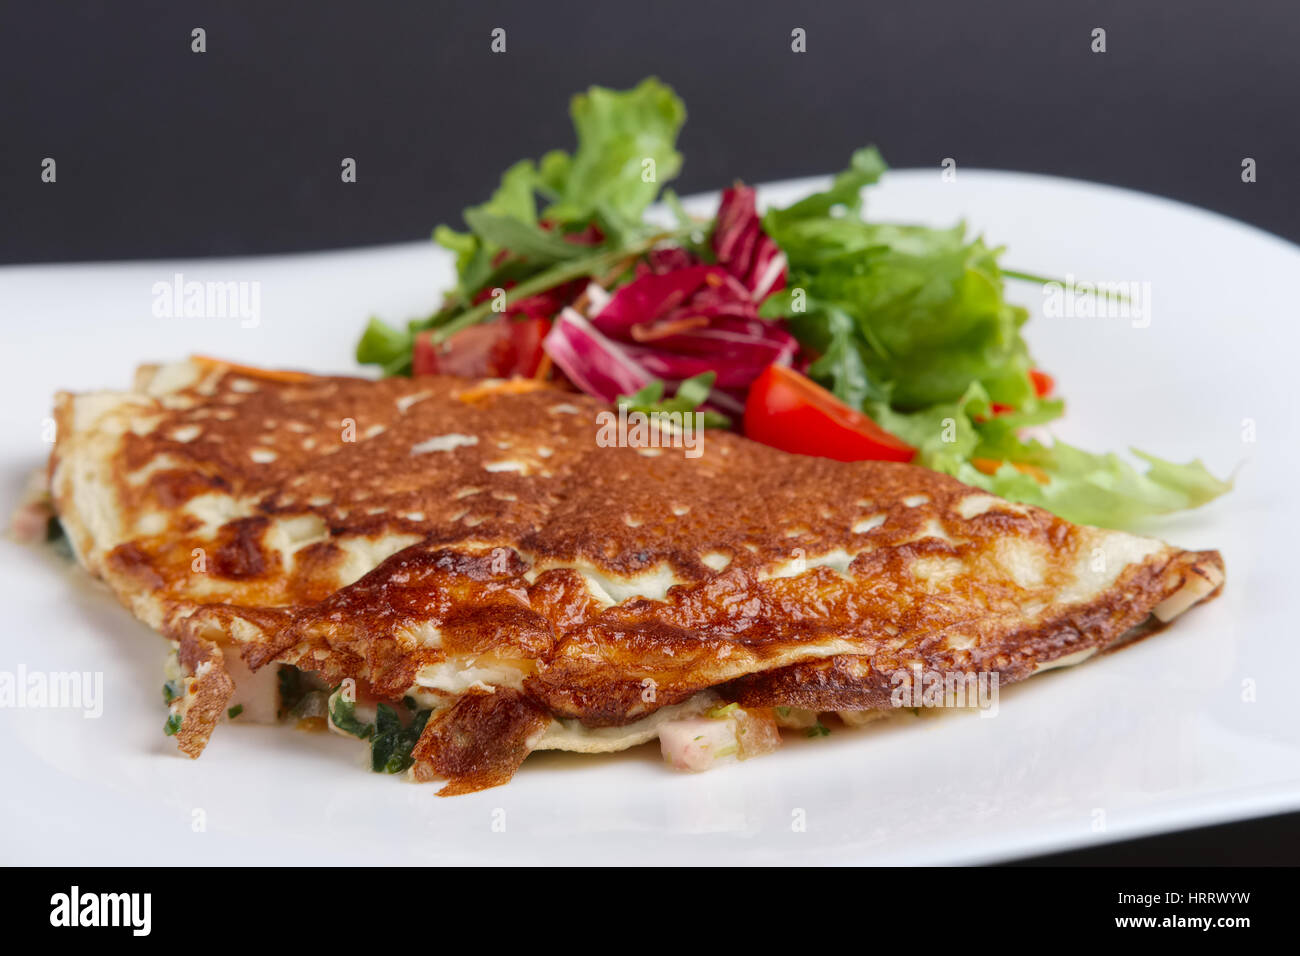 Closeup of omelet with ham and vegetables - Stock Image